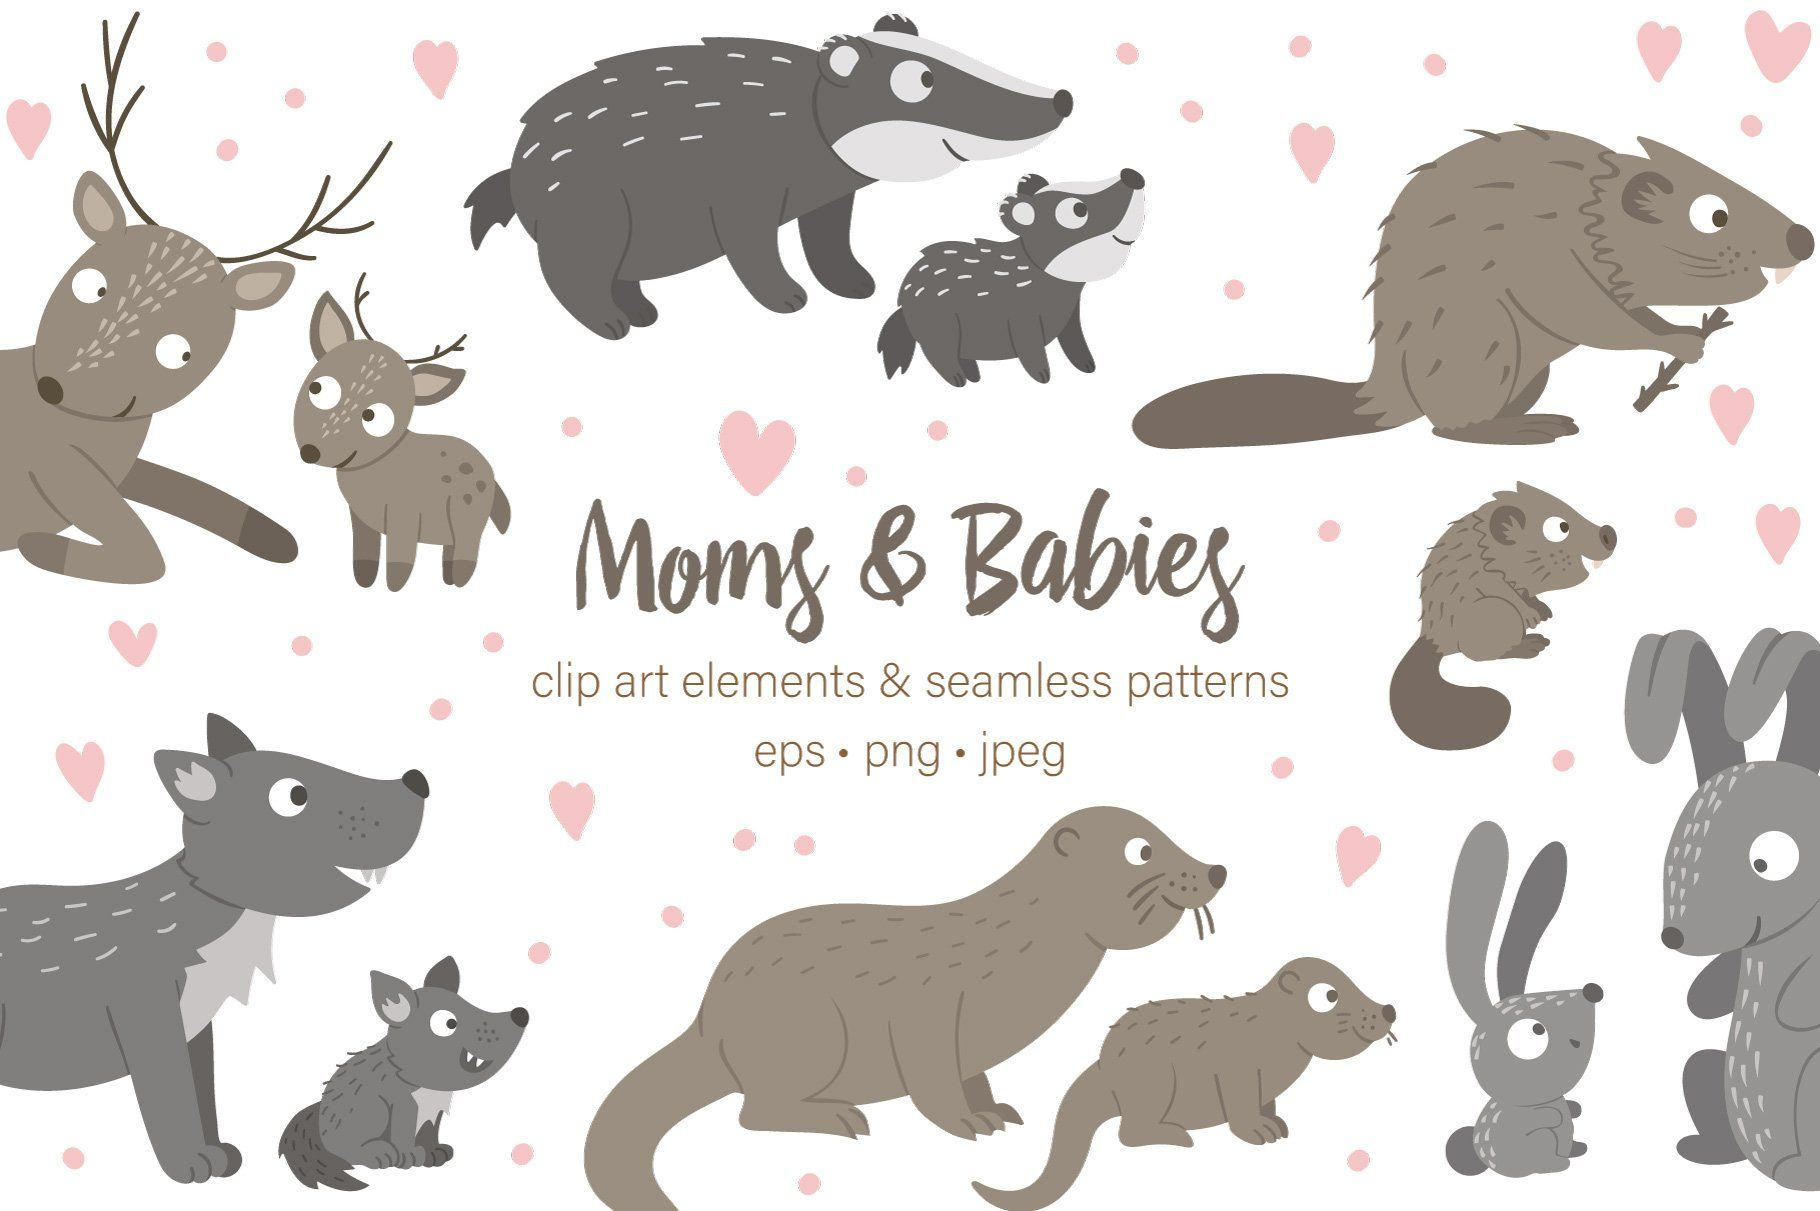 Moms And Babies Baby Clip Art Mom And Baby Illustration Design